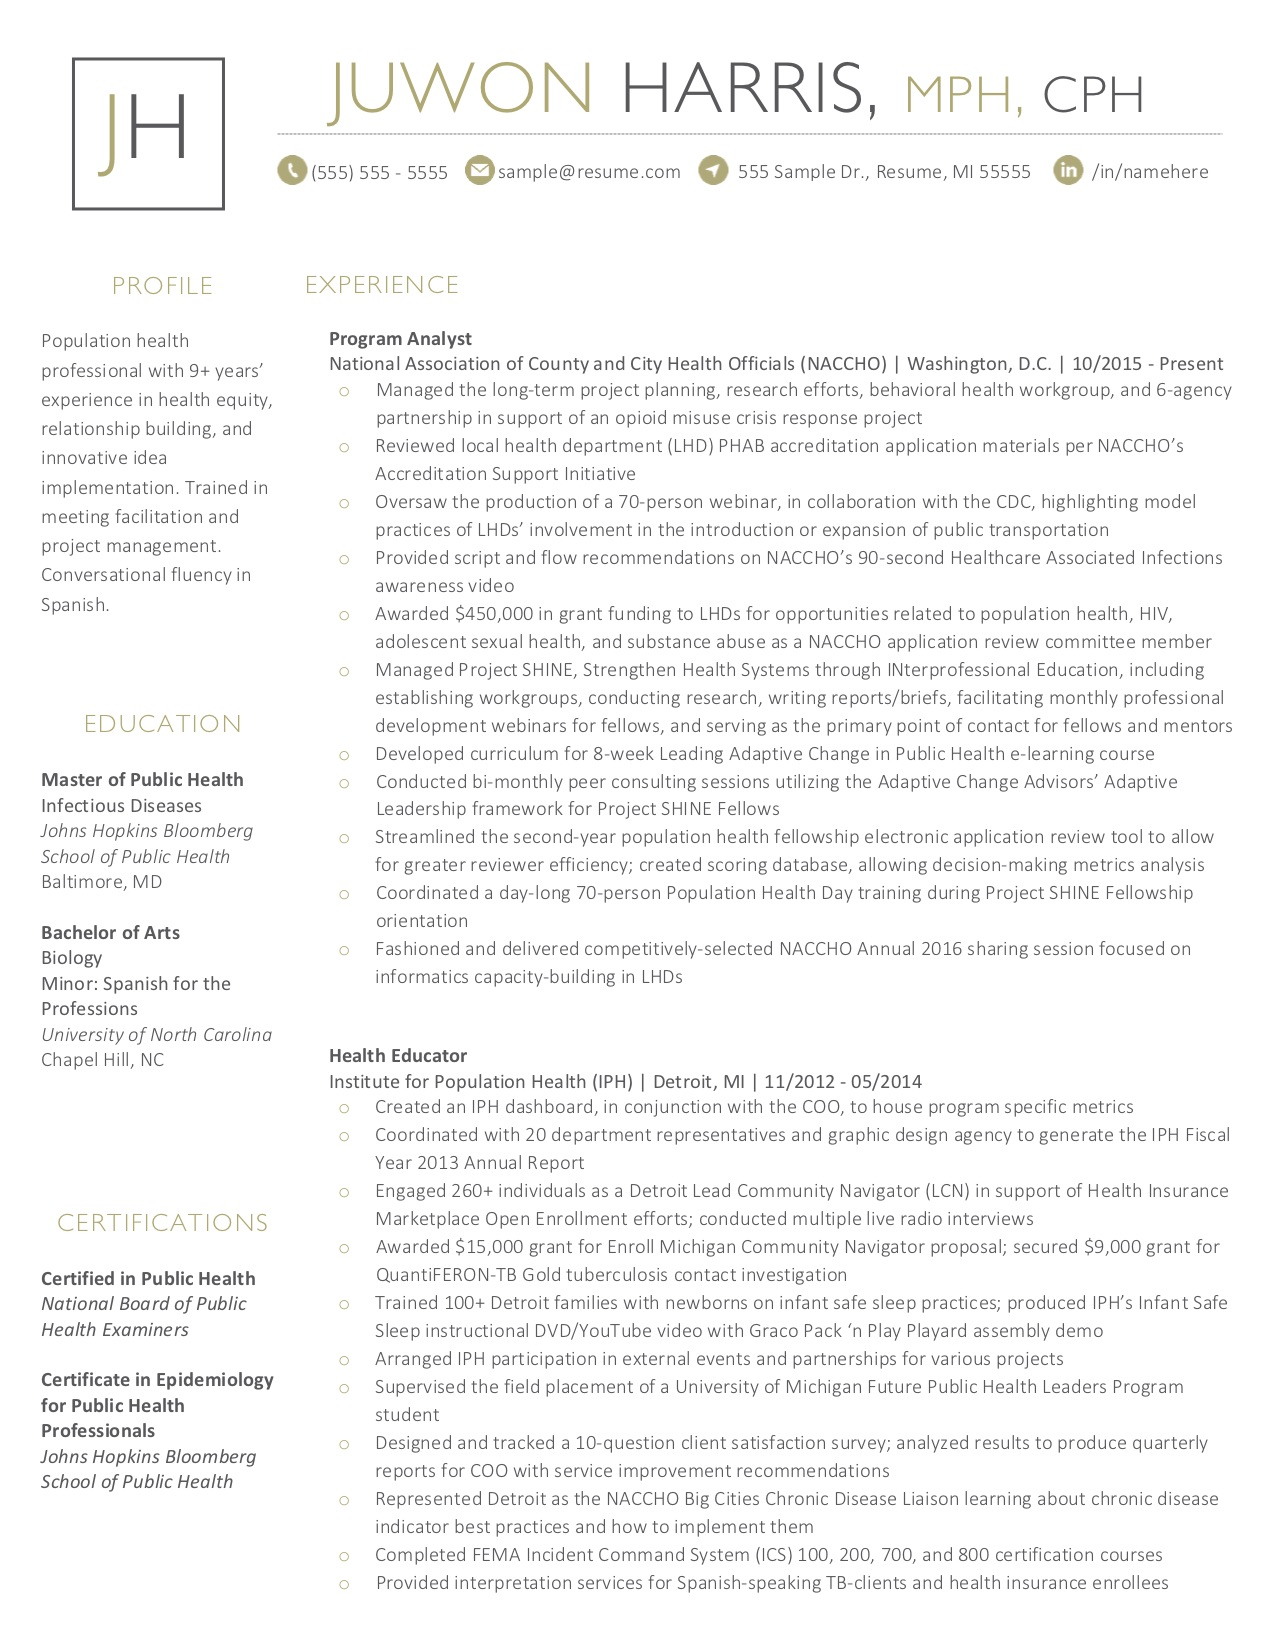 Client Resume #23. Click to enlarge.